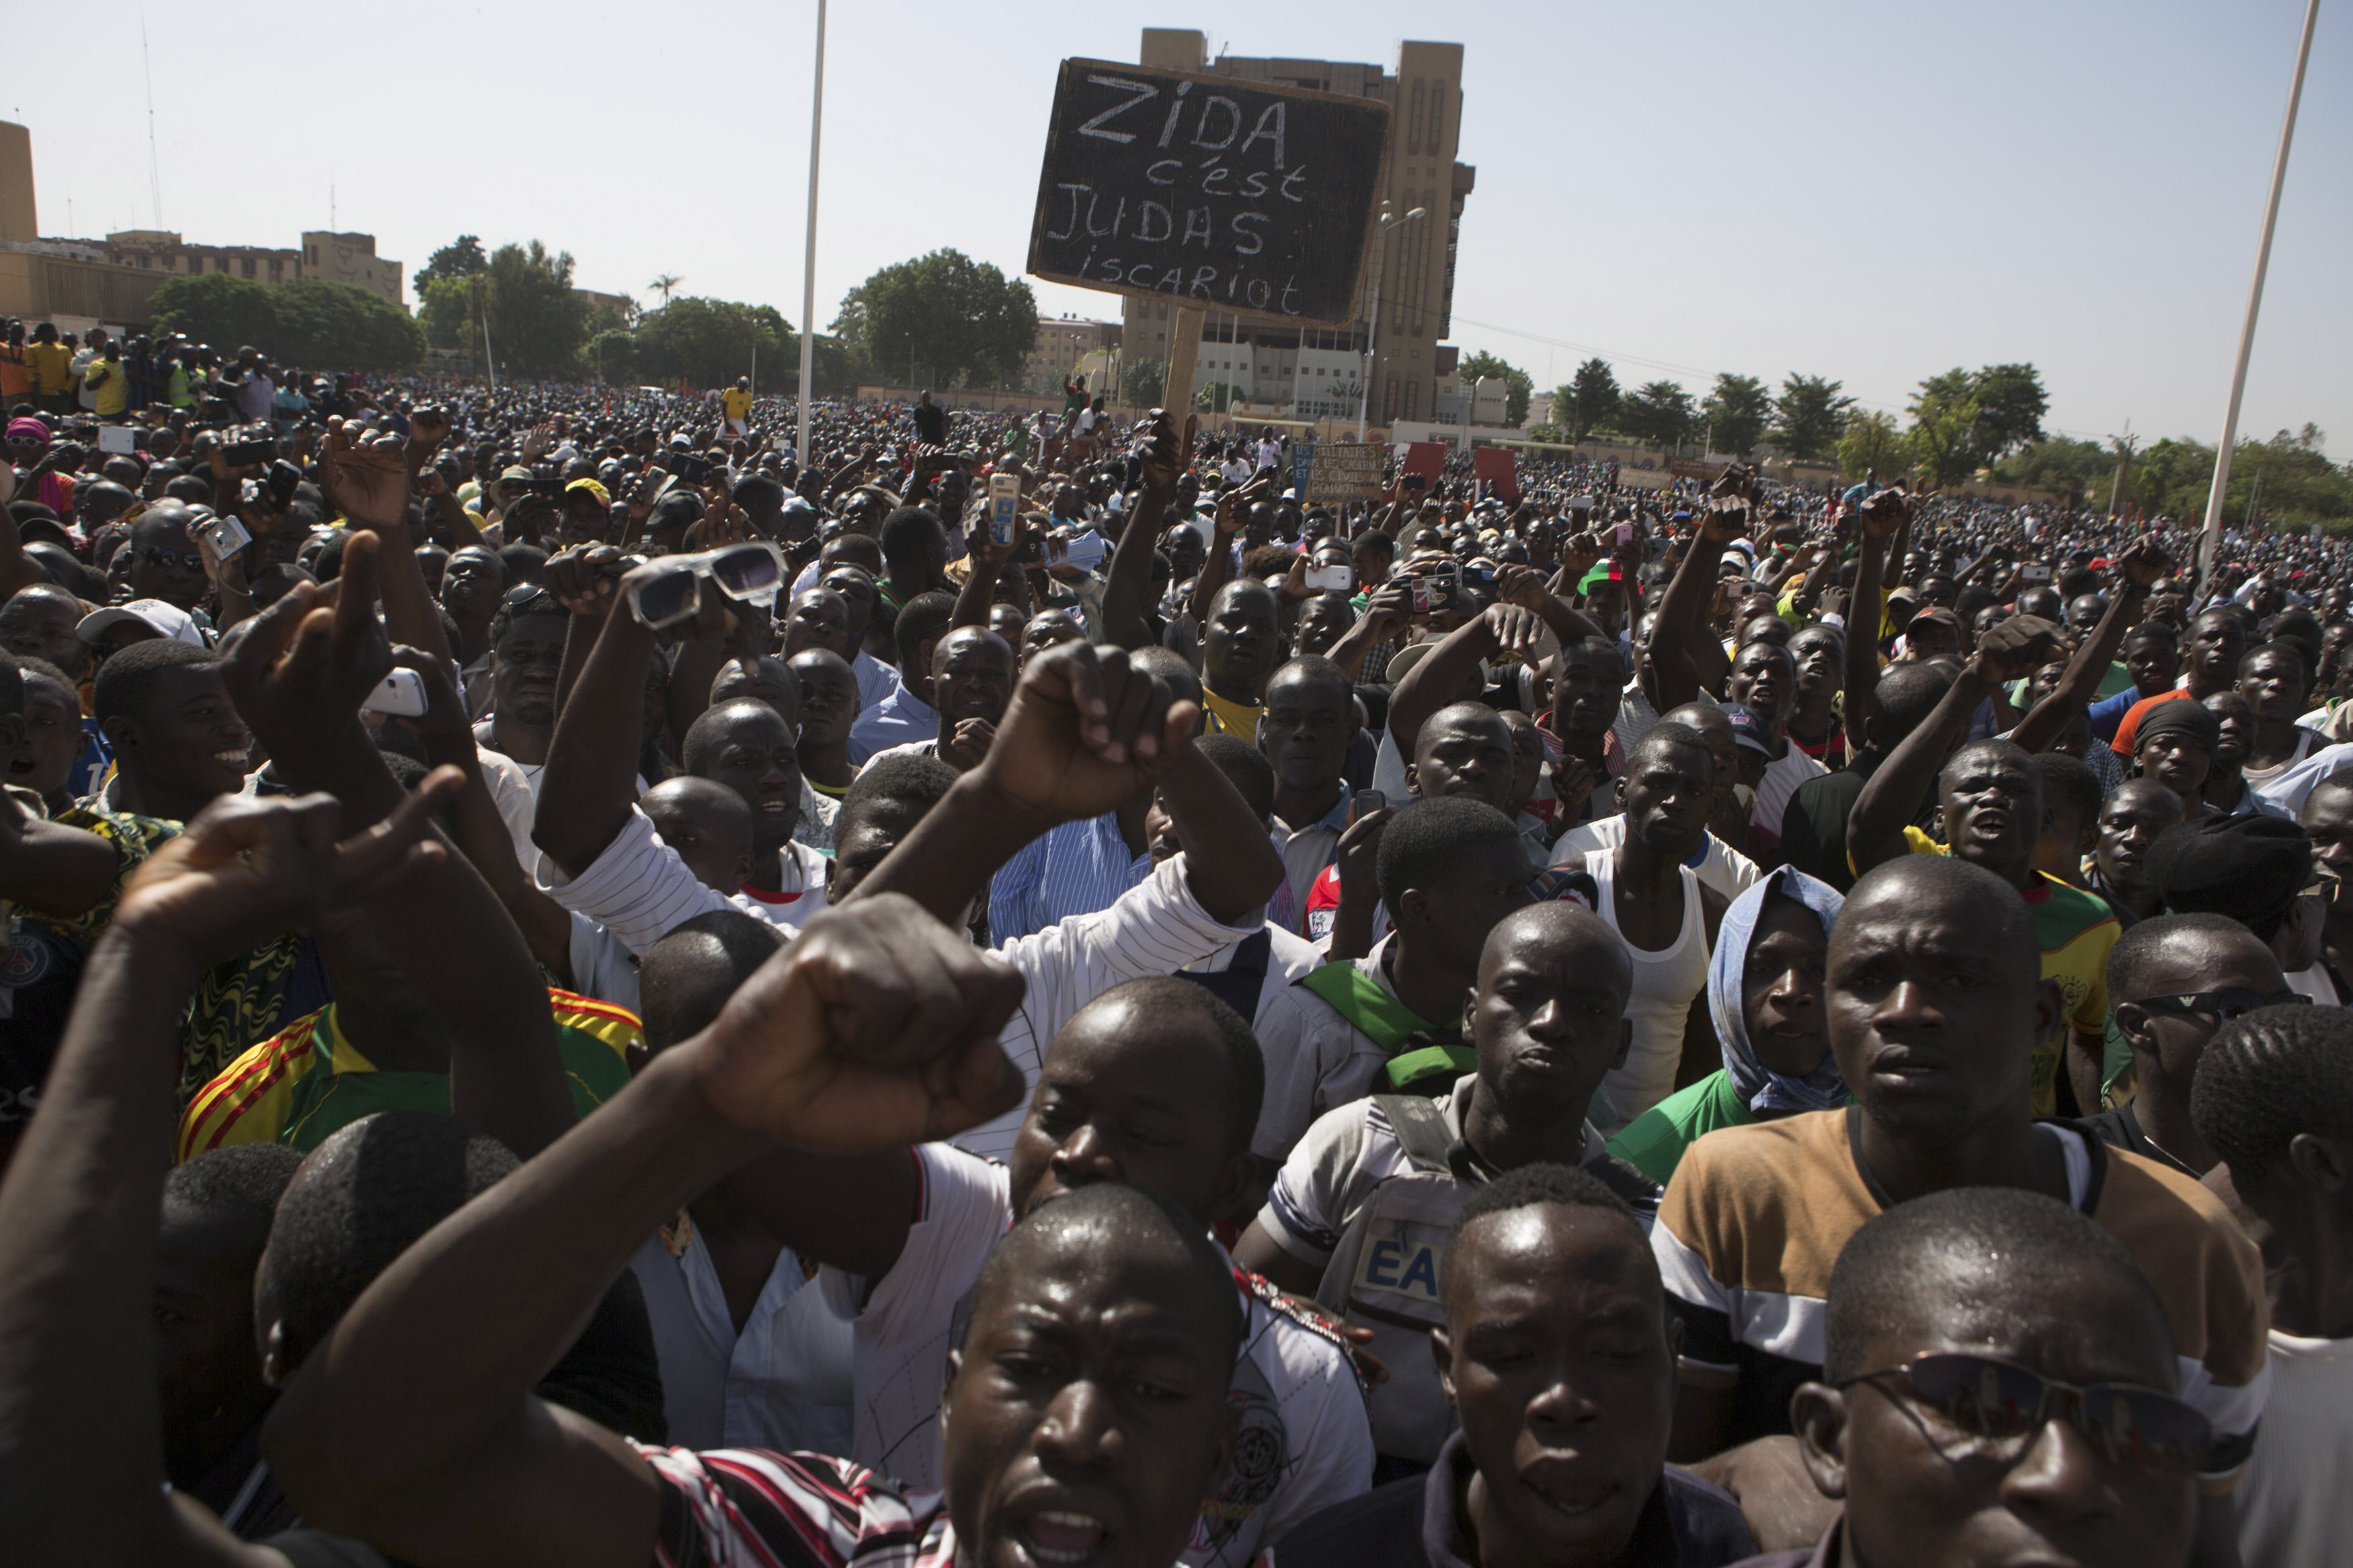 Army Clears Protesters, Fires Warning Shots in Burkina Faso